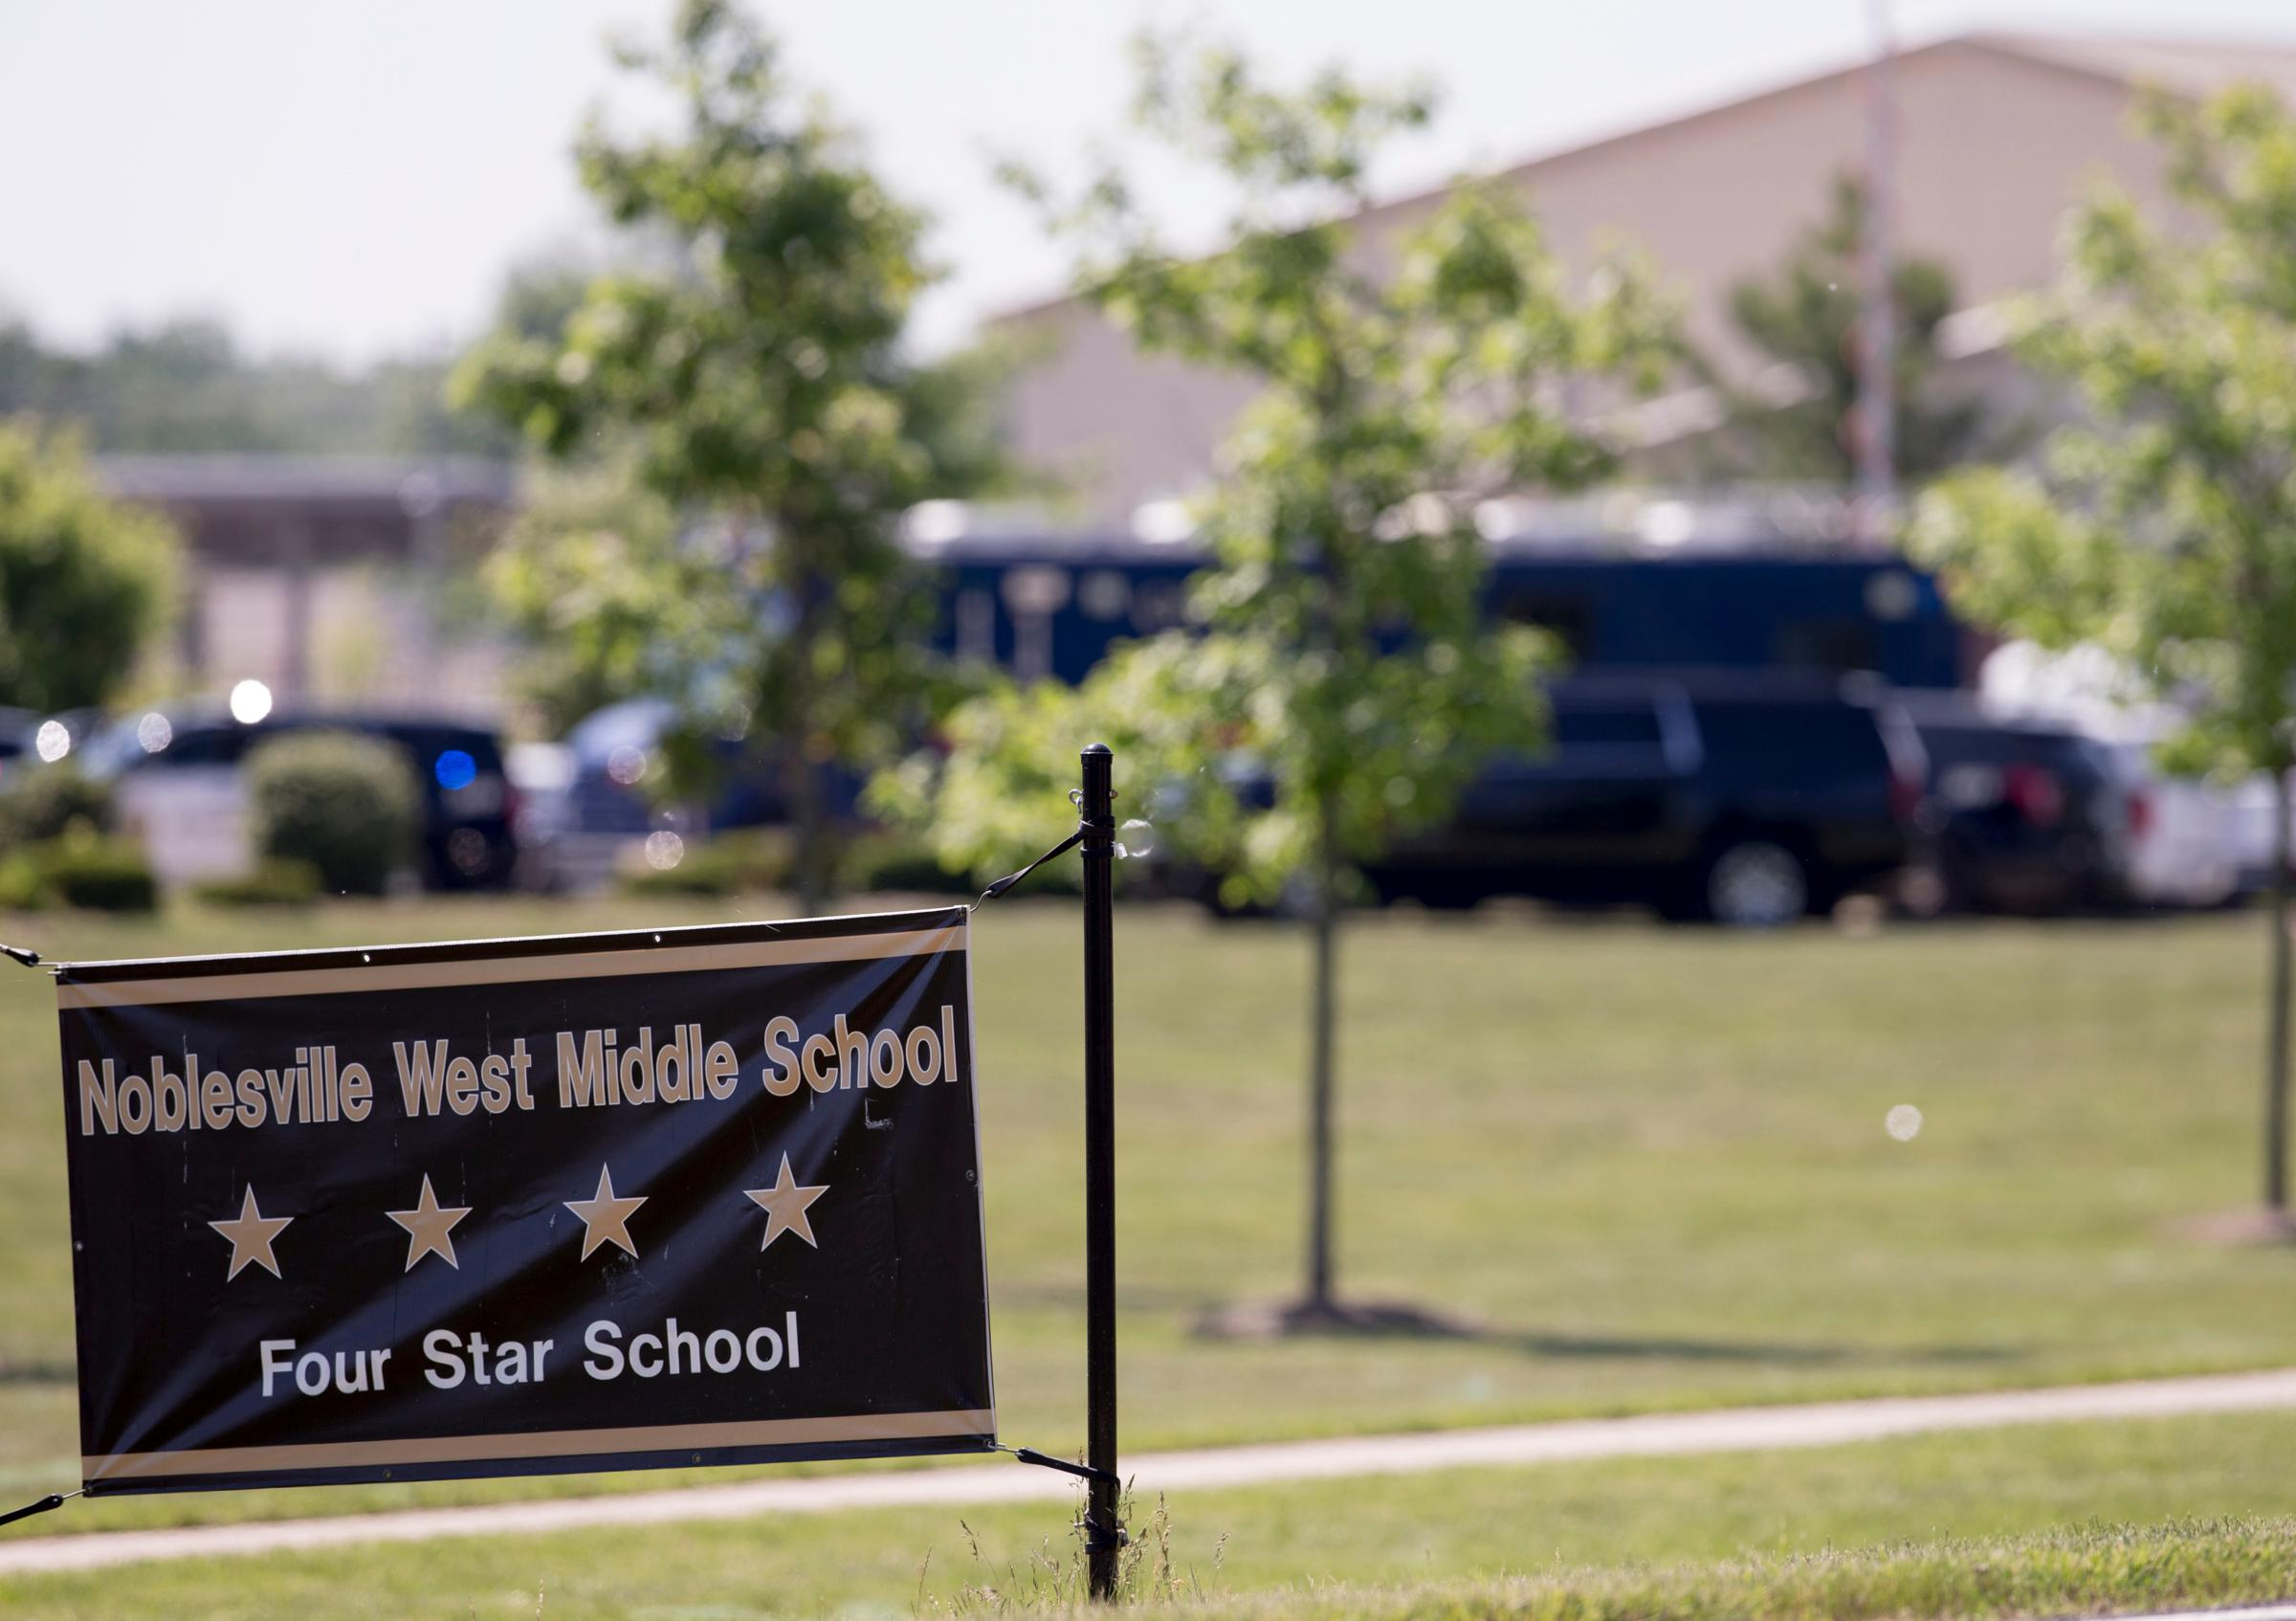 Law enforcement vehicles are seen behind a school sign after a shooting at Noblesville West Middle School in Noblesville, Ind., on Friday, May 25, 2018. A male student opened fire at the suburban Indianapolis school wounding another student and a teacher before being taken into custody, authorities said. (Robert Scheer/The Indianapolis Star via AP)